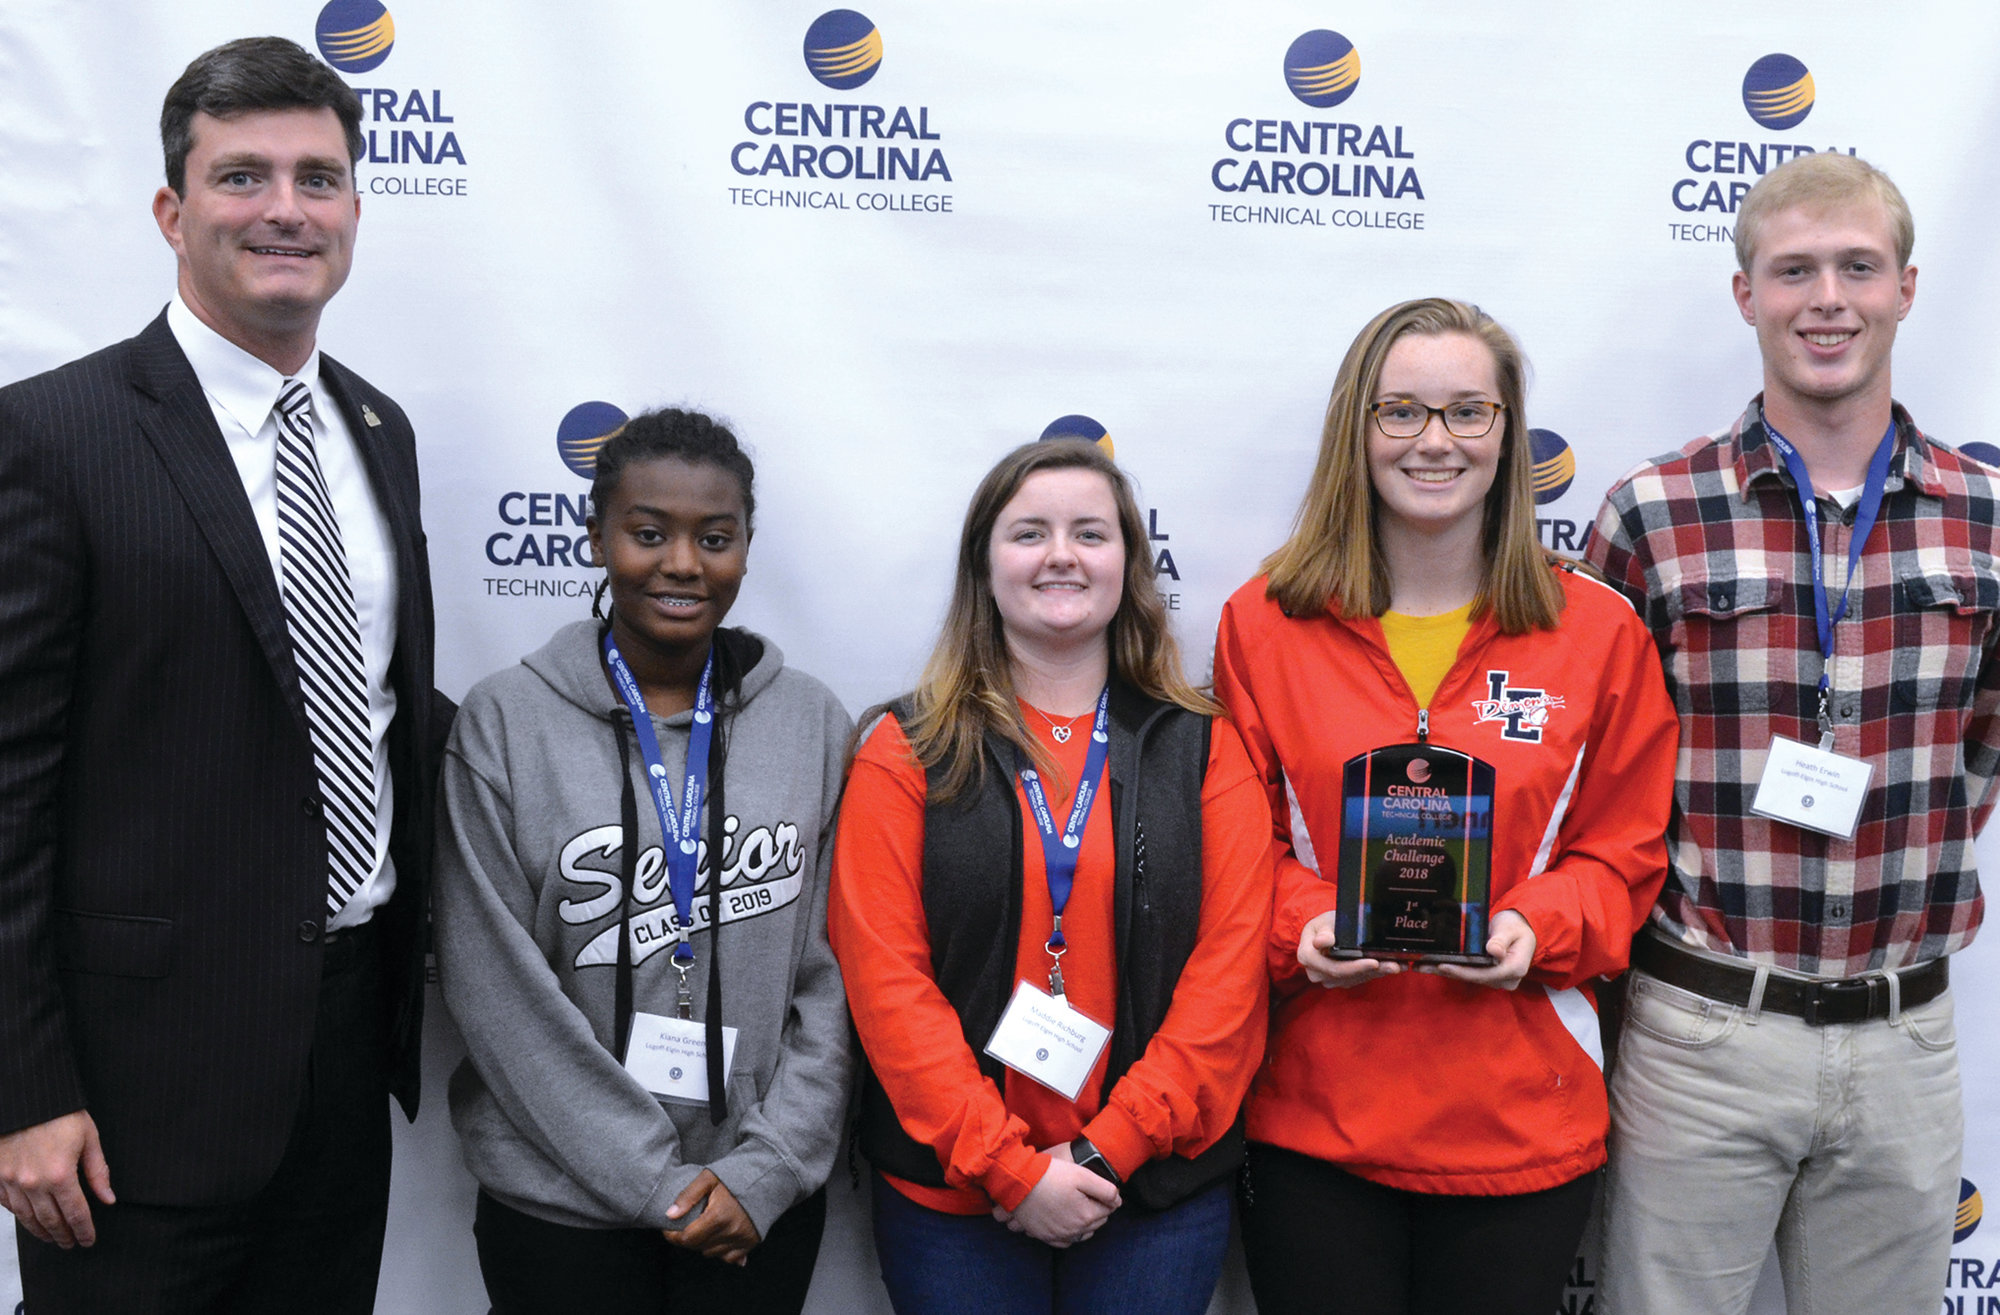 PHOTO PROVIDEDCCTC President Dr. Michael Mikota poses with Academic Challenge winners from Lugoff-Elgin High School: Kiana Green, Maddie Richburg, Sarah Turner and Heath Erwin.